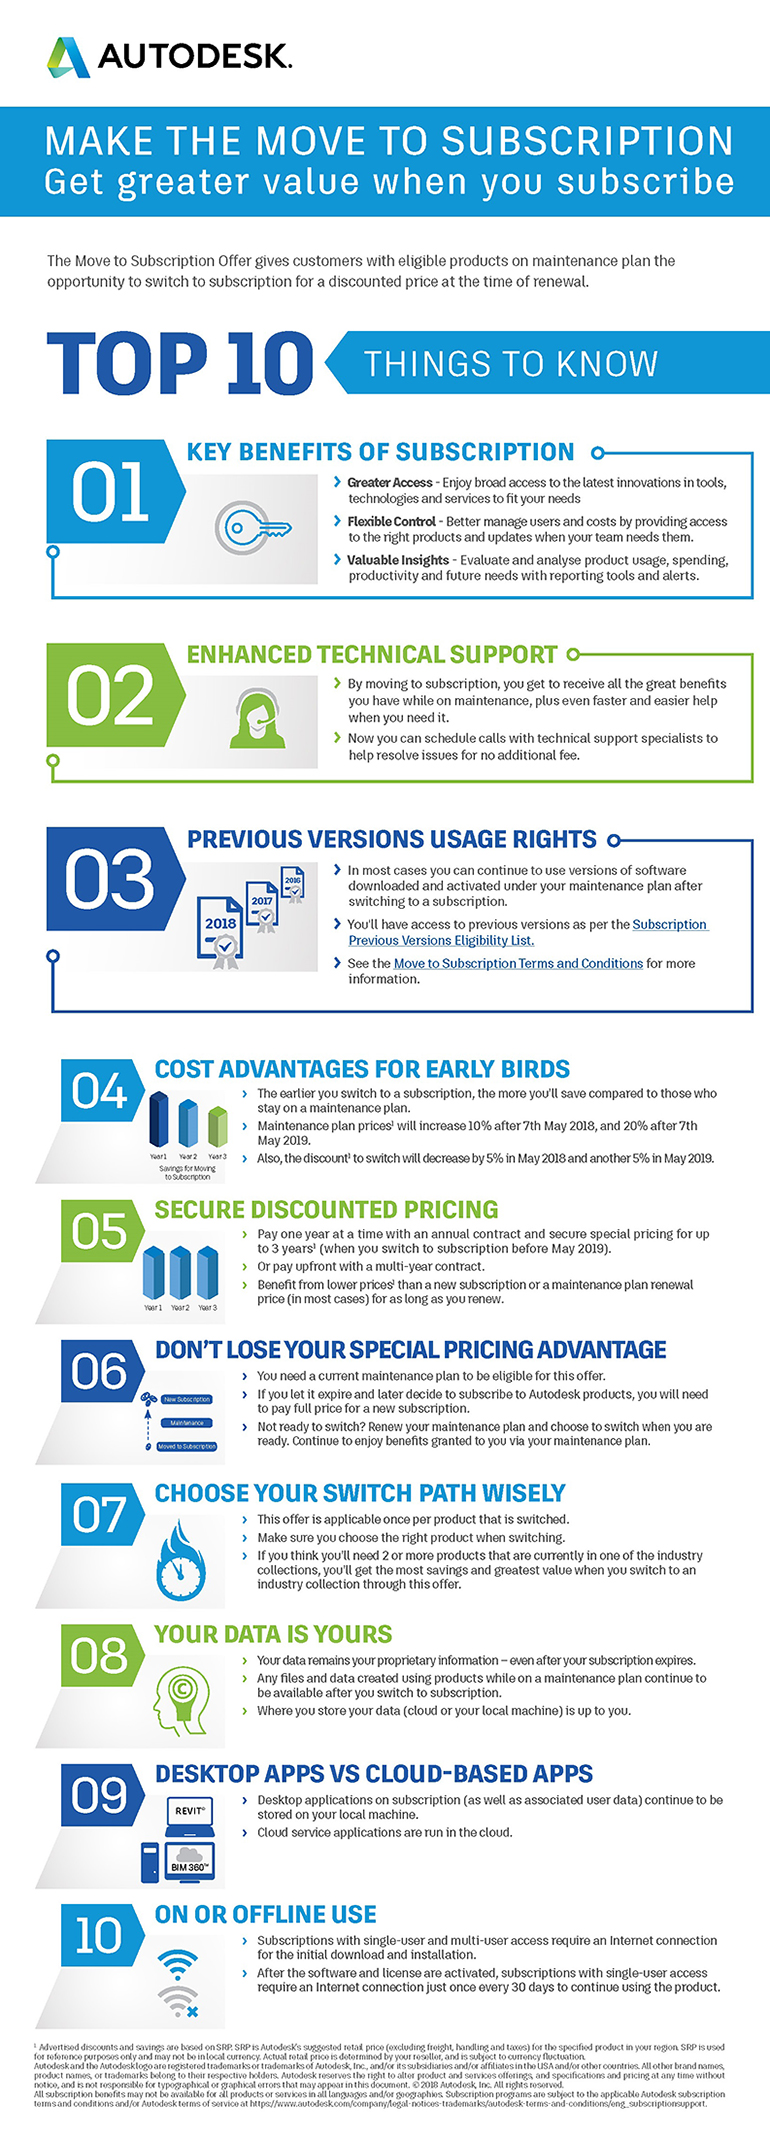 Infographic displaying the Top 10 Things to Know About Subscribing to Autodesk.